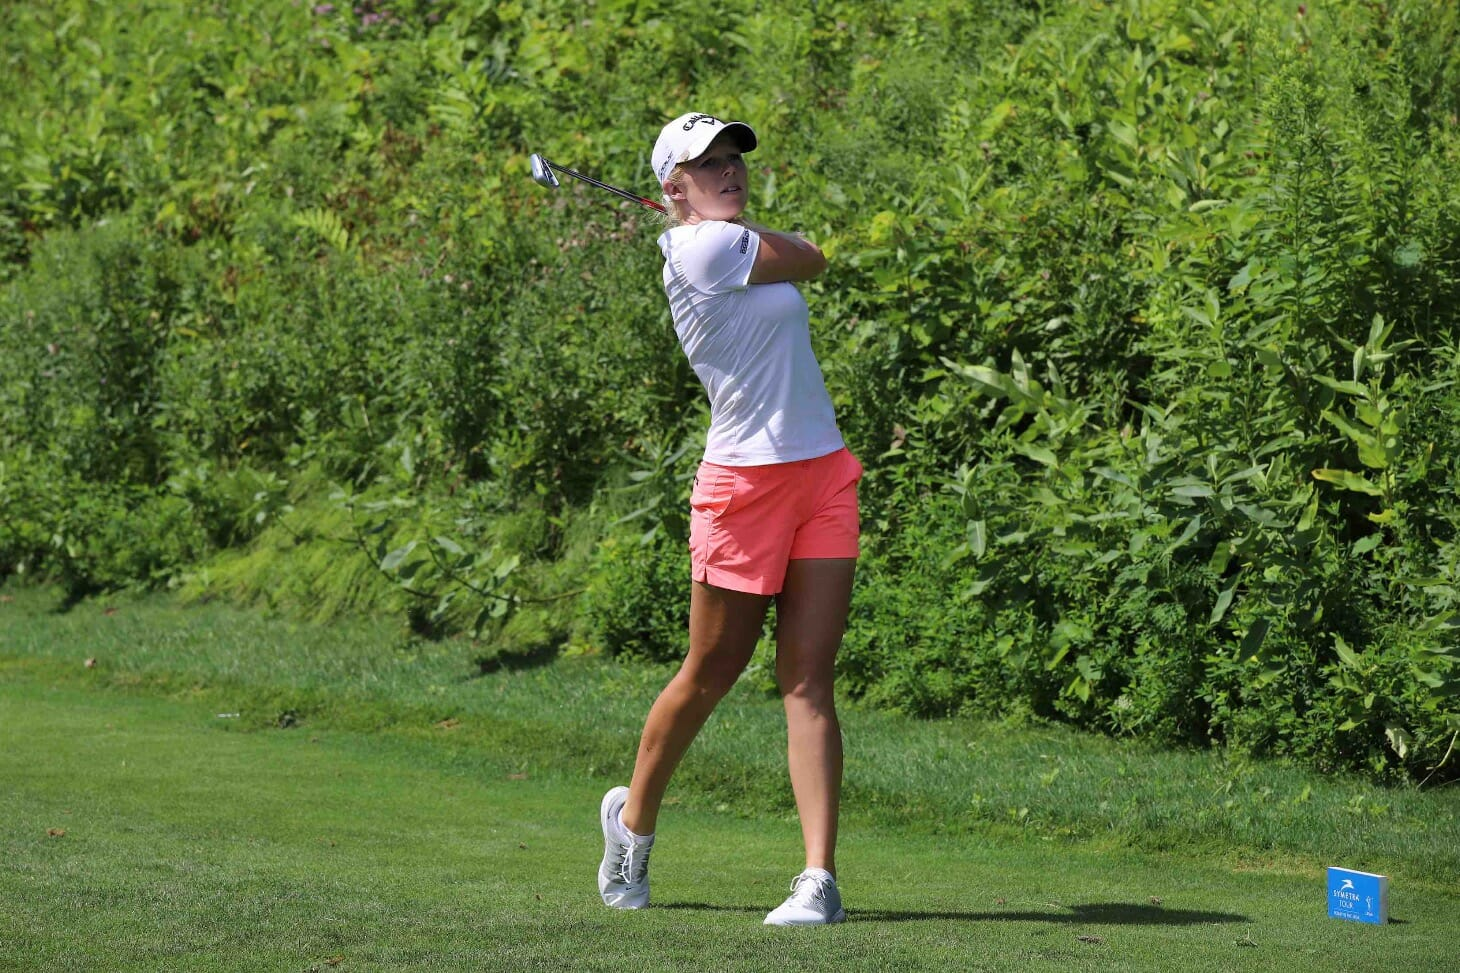 Meadow continues her chase for LPGA card status | Irish Golfer News